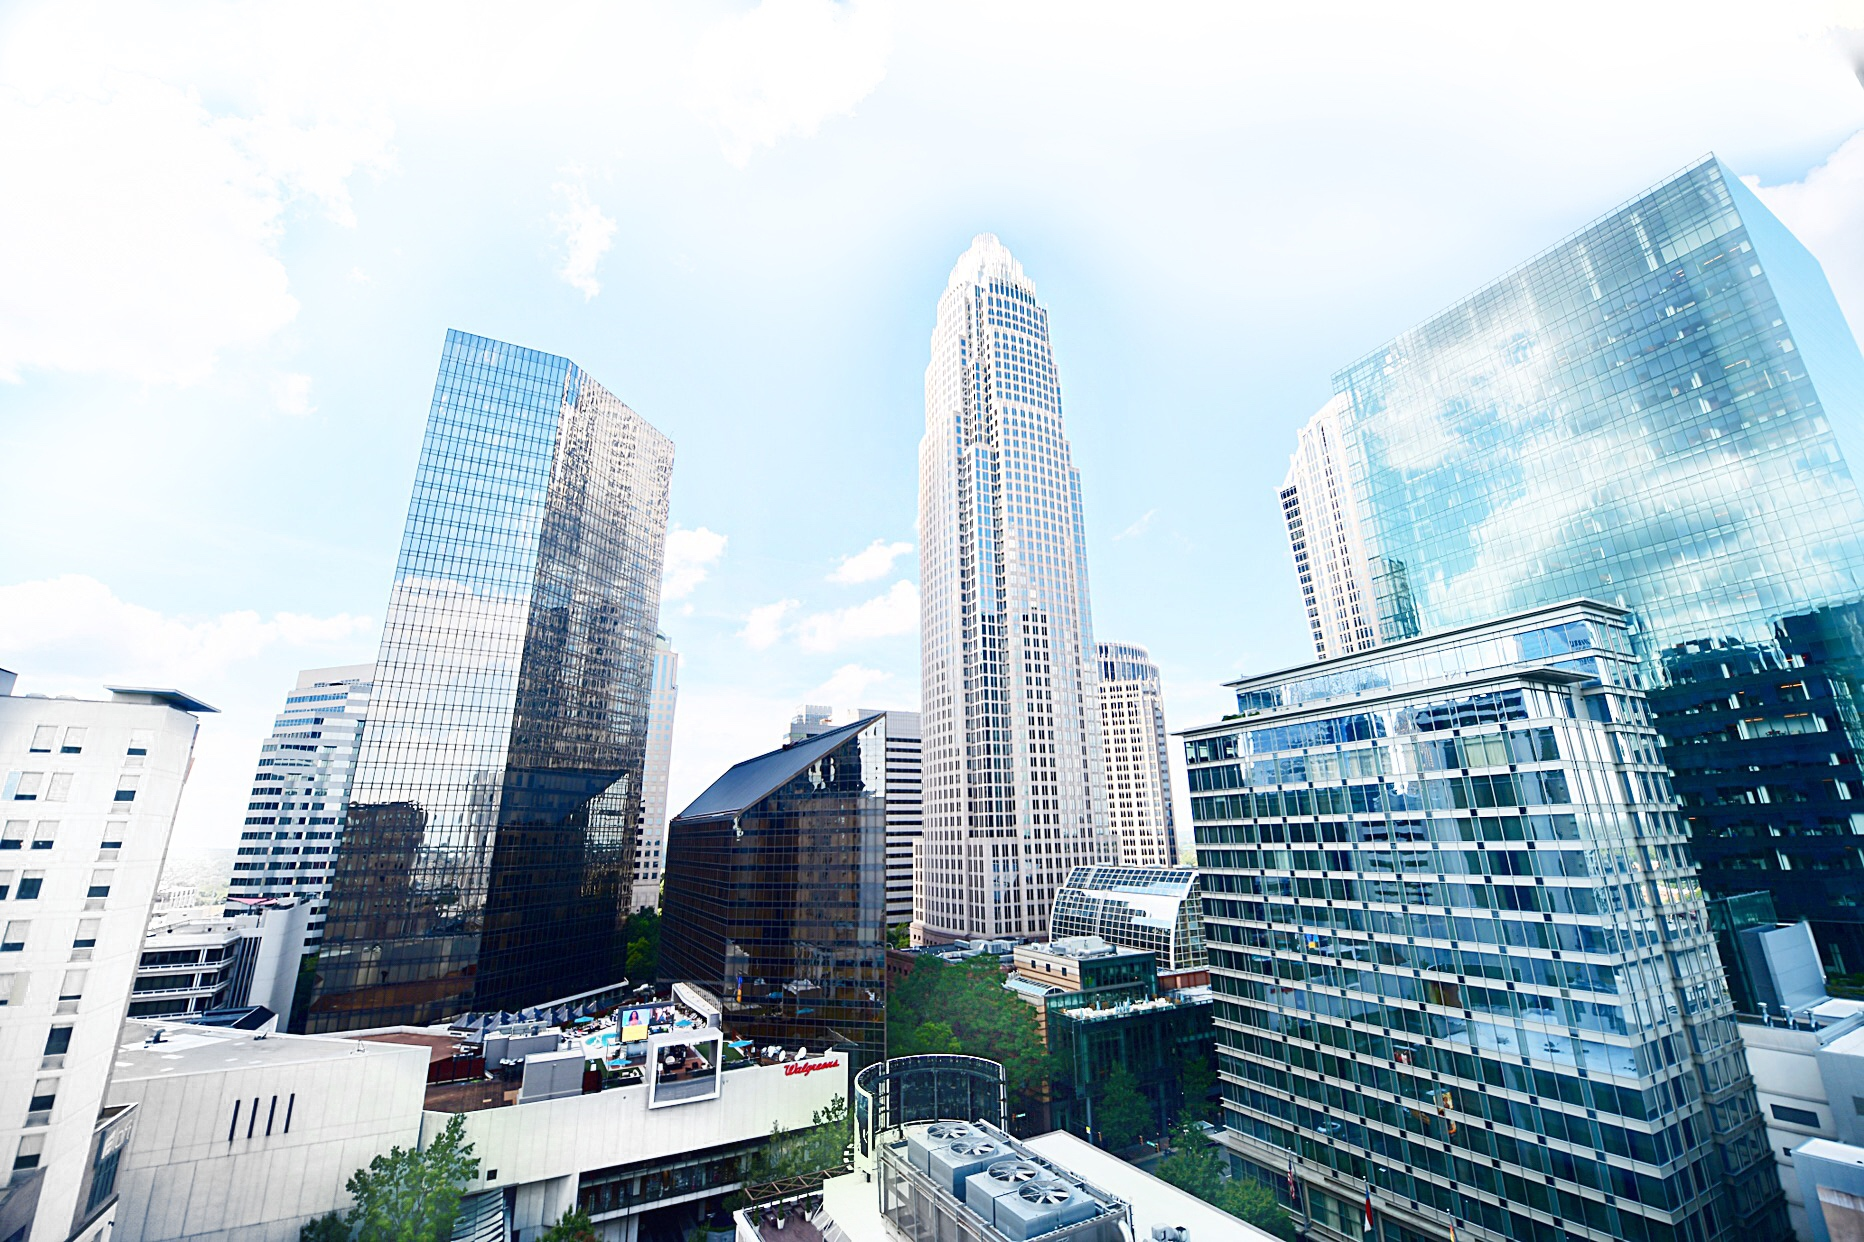 AC Hotel Charlotte City Center, AC Hotel Charlotte, AC hotel Marriott, AC Hotel room views, Uptown Charlotte view, Nuvole Rooftop views